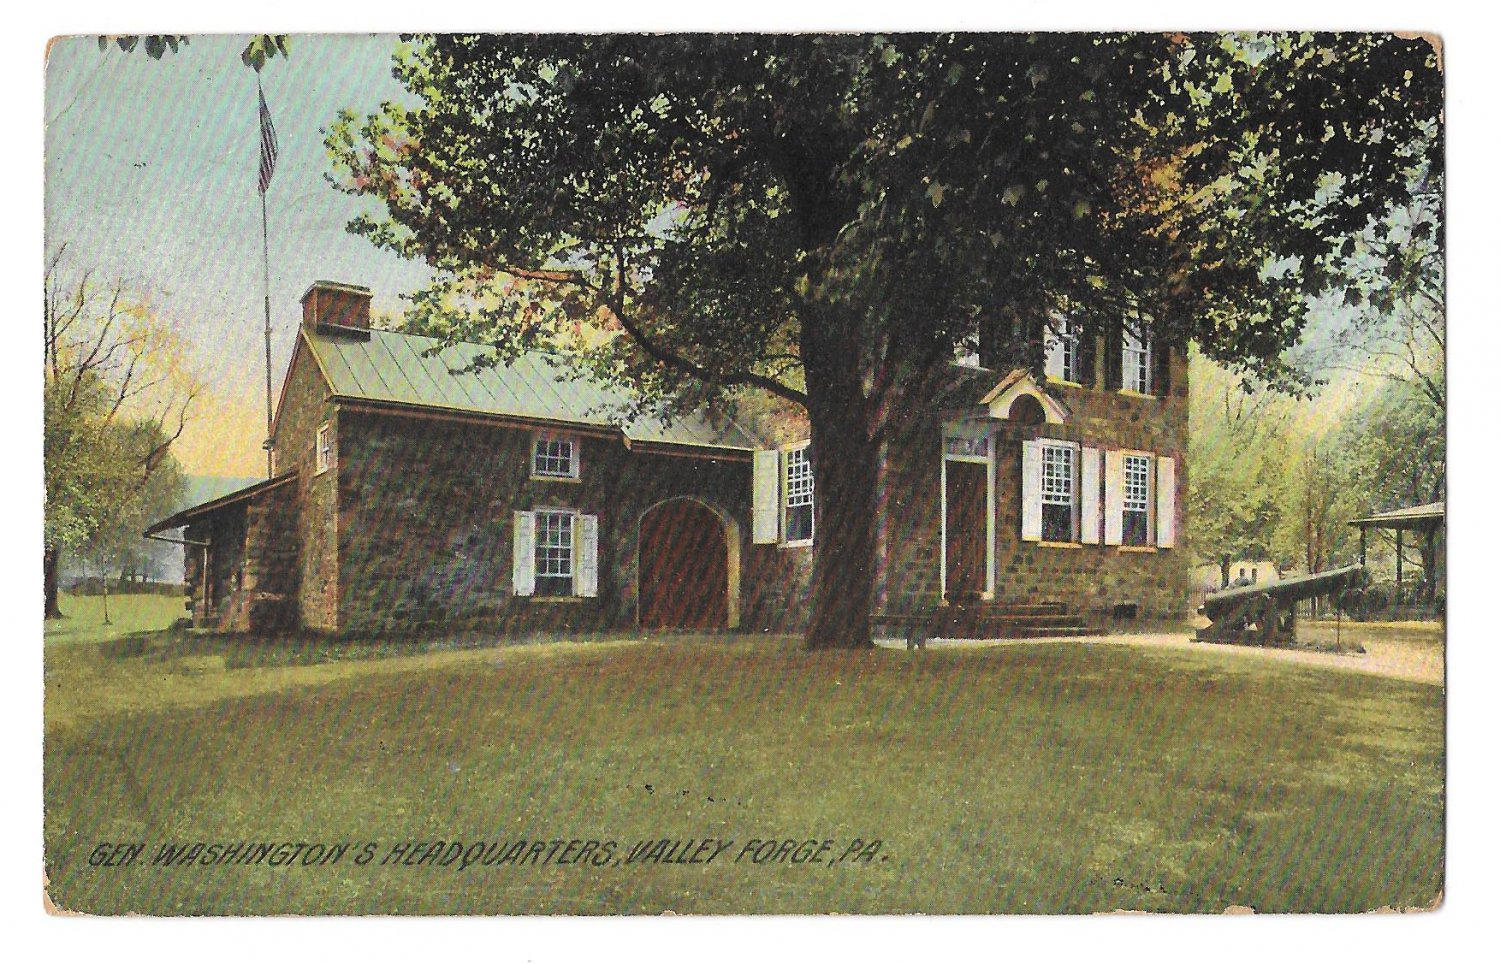 General Washingtons Headquaarters Valley Forge PA  Postcard 1909 Flag Cancel